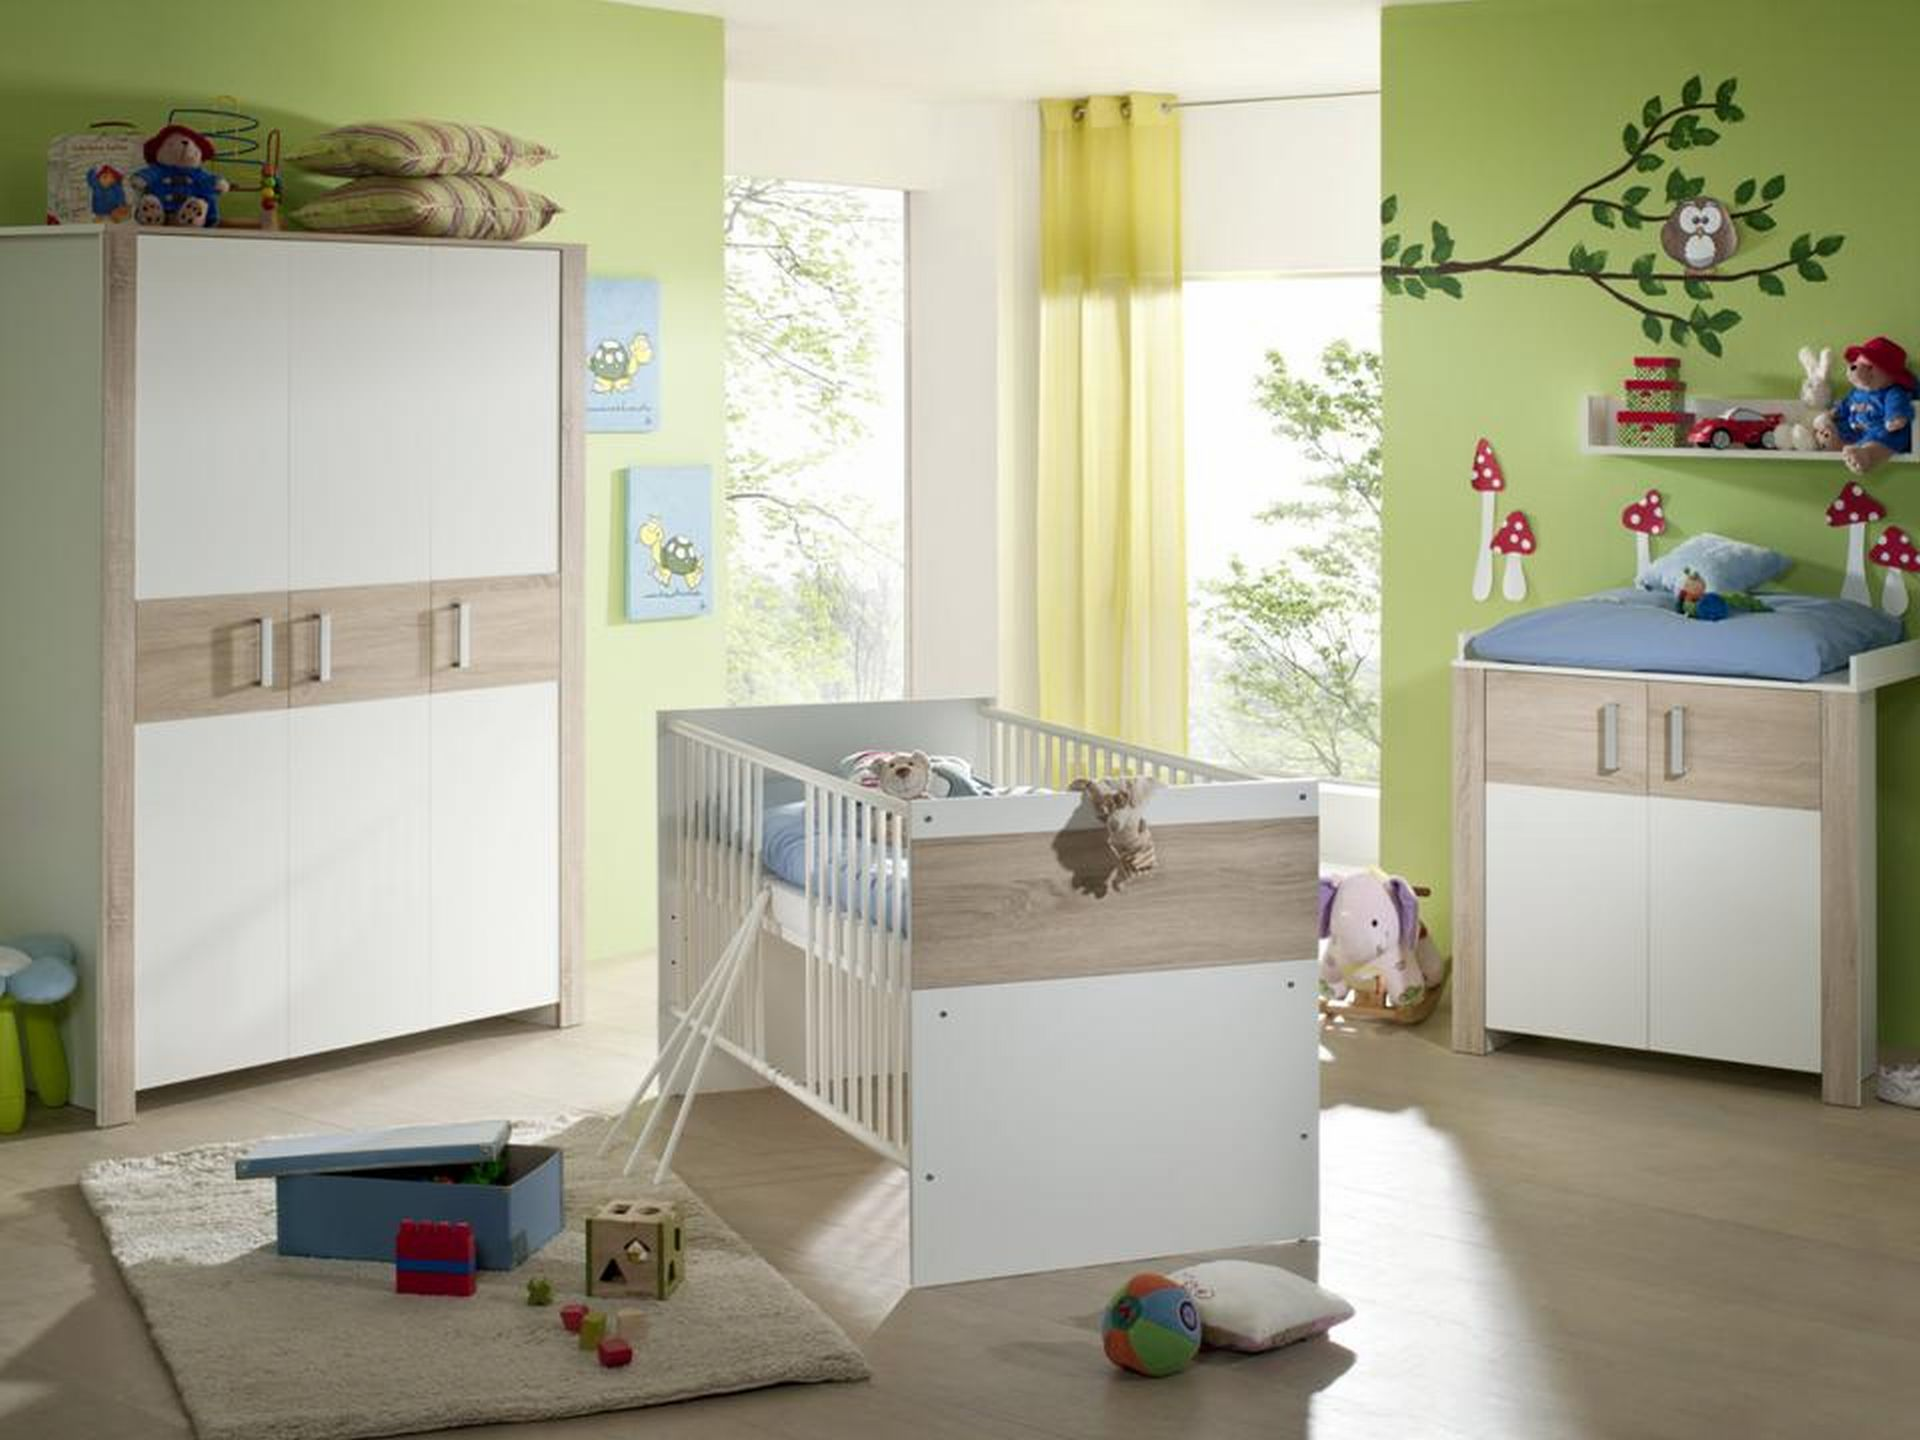 3trg babyzimmerset boboo babyzimmer kinderzimmer babyzimmerset babym bel neu ebay. Black Bedroom Furniture Sets. Home Design Ideas